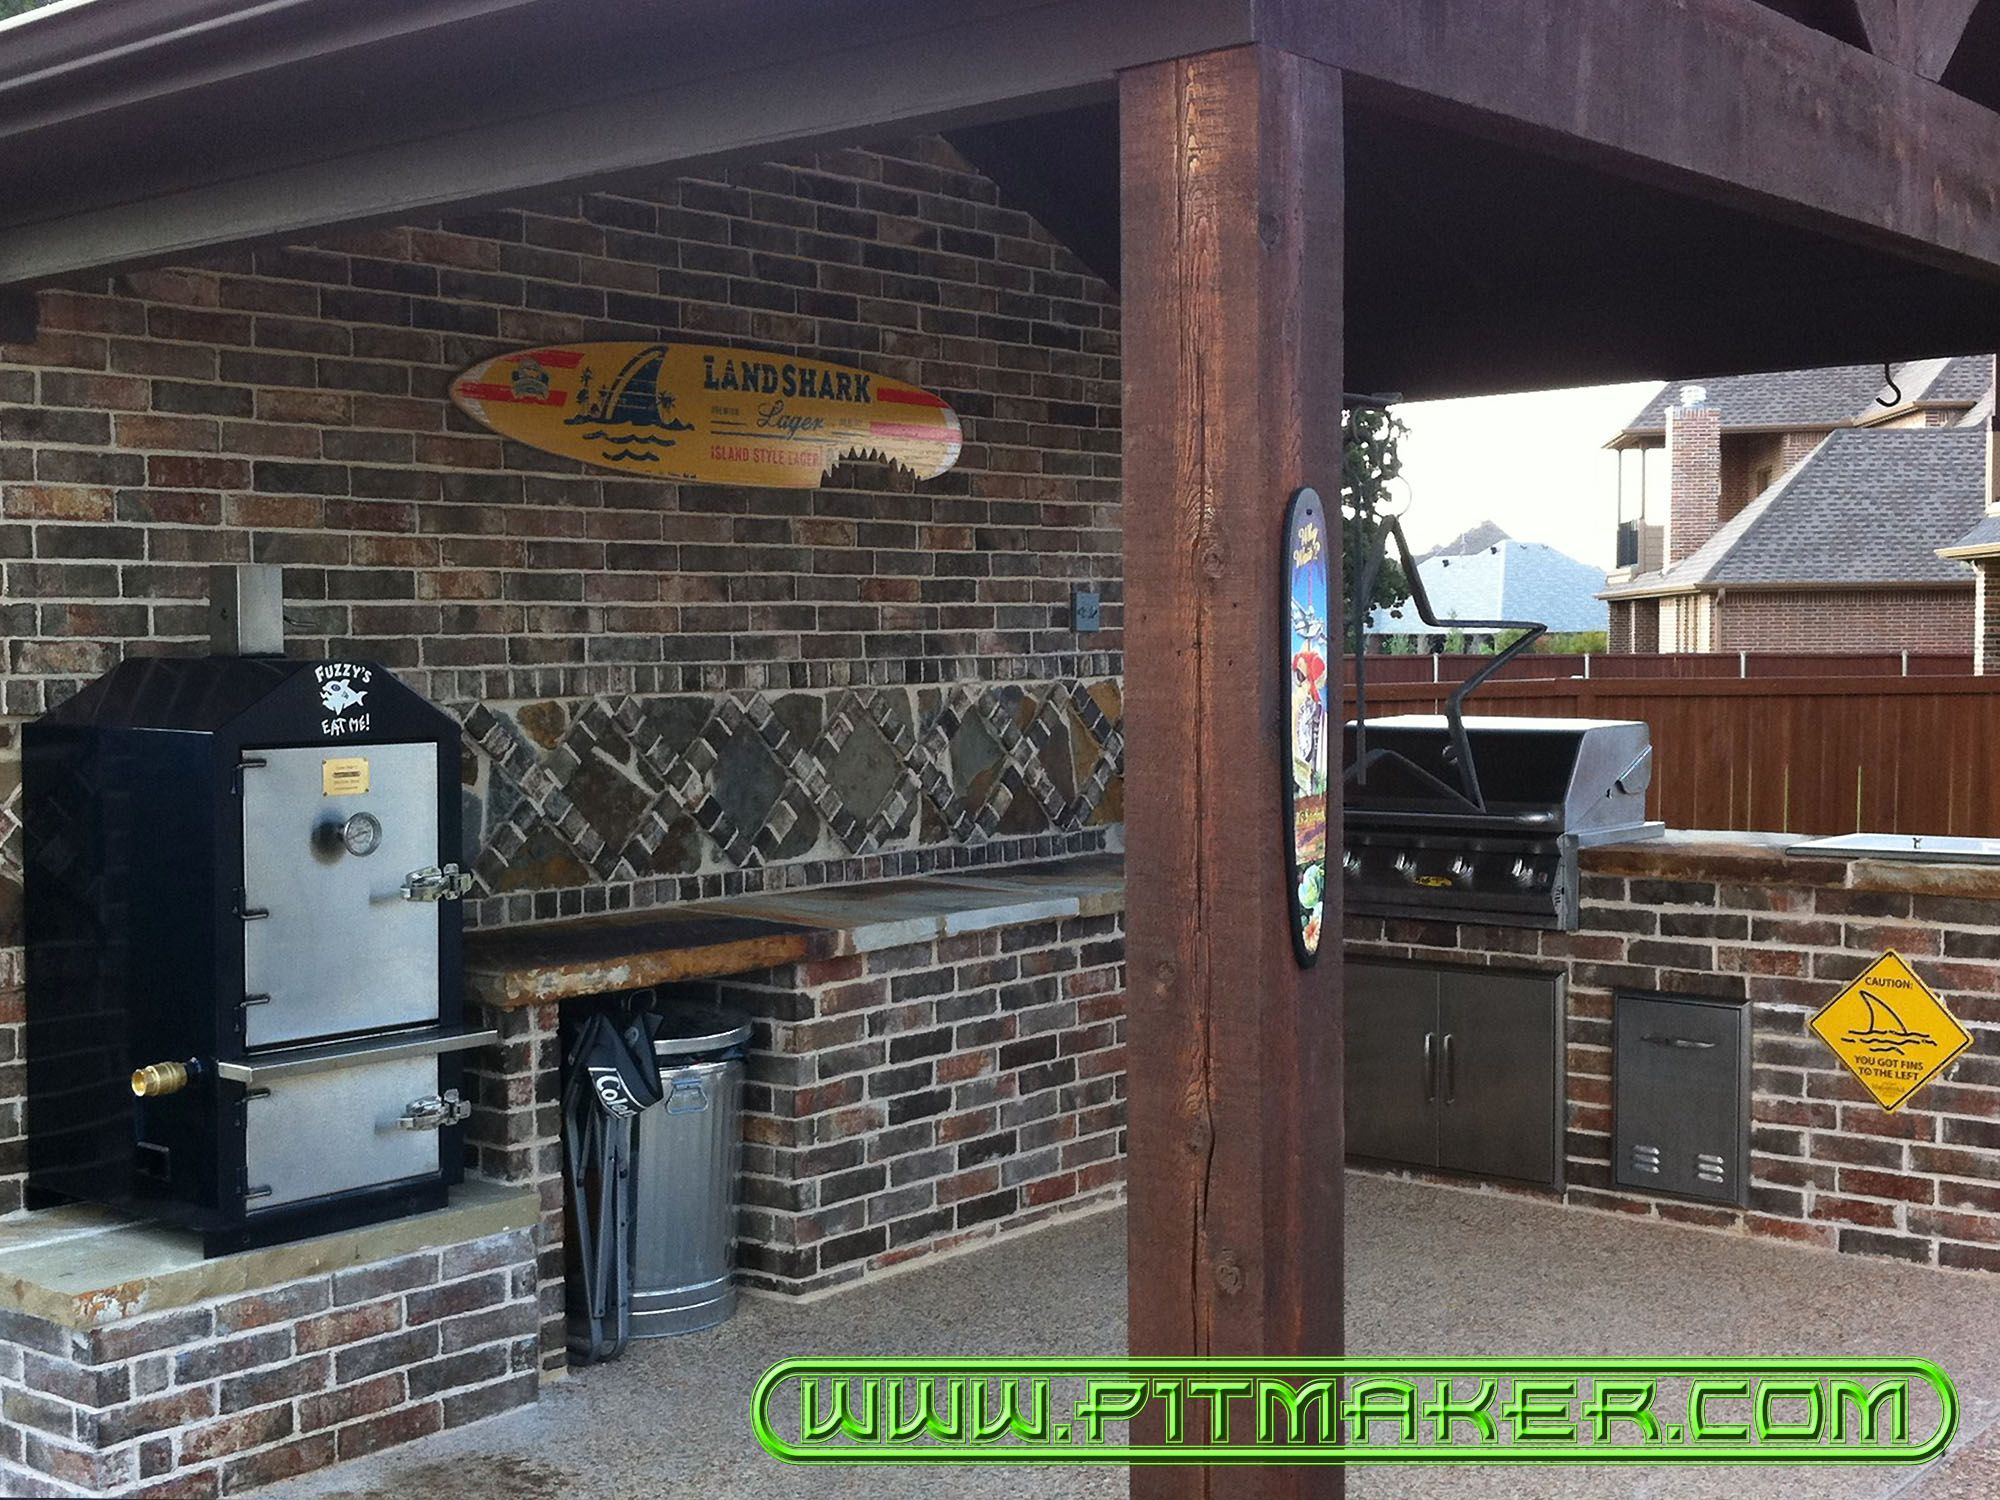 pitmaker in houston texas 800 299 9005 281 359 7487 in 2020 build outdoor kitchen on outdoor kitchen with smoker id=30411